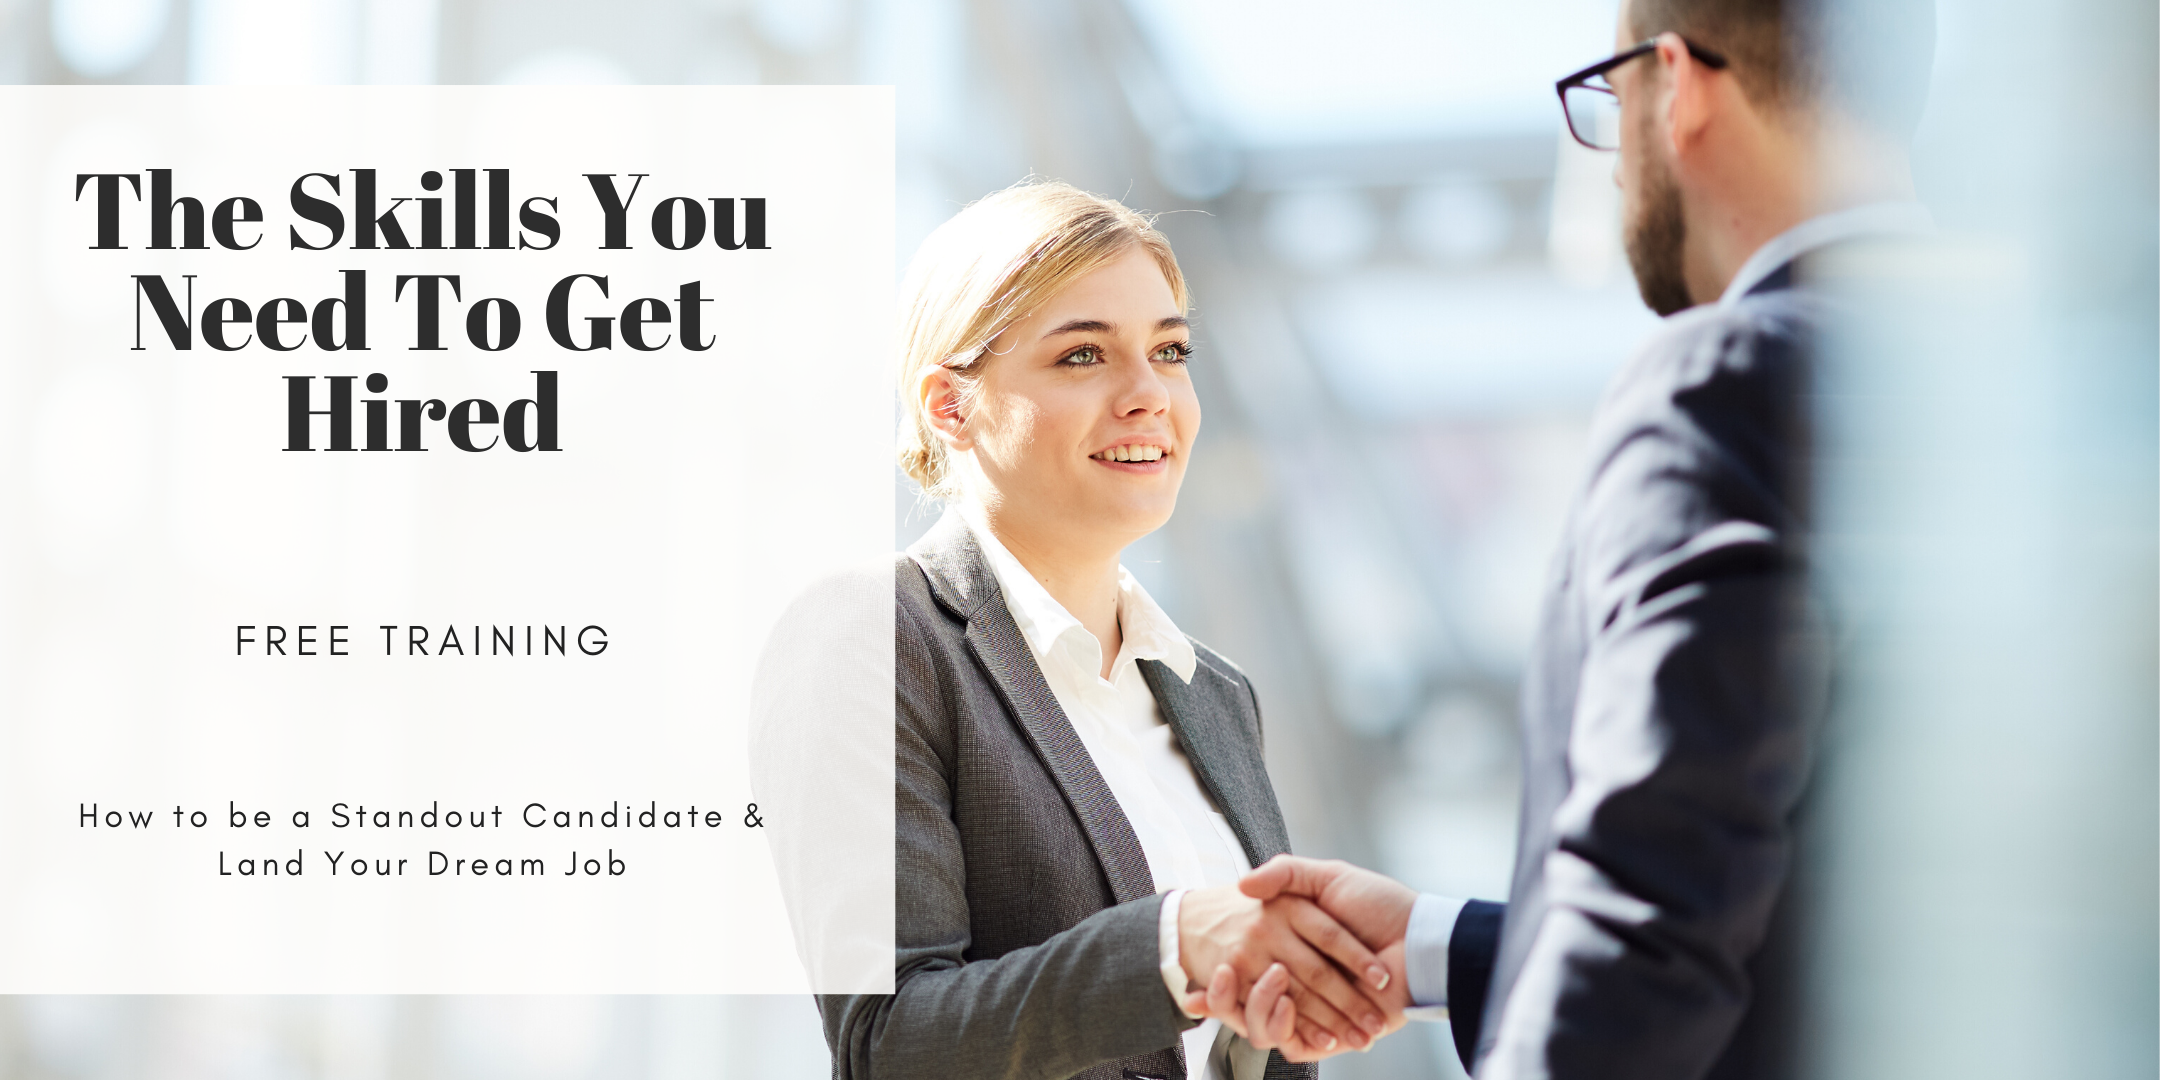 TRAINING: How to Land Your Dream Job (Career Workshop) Simi Valley, CA